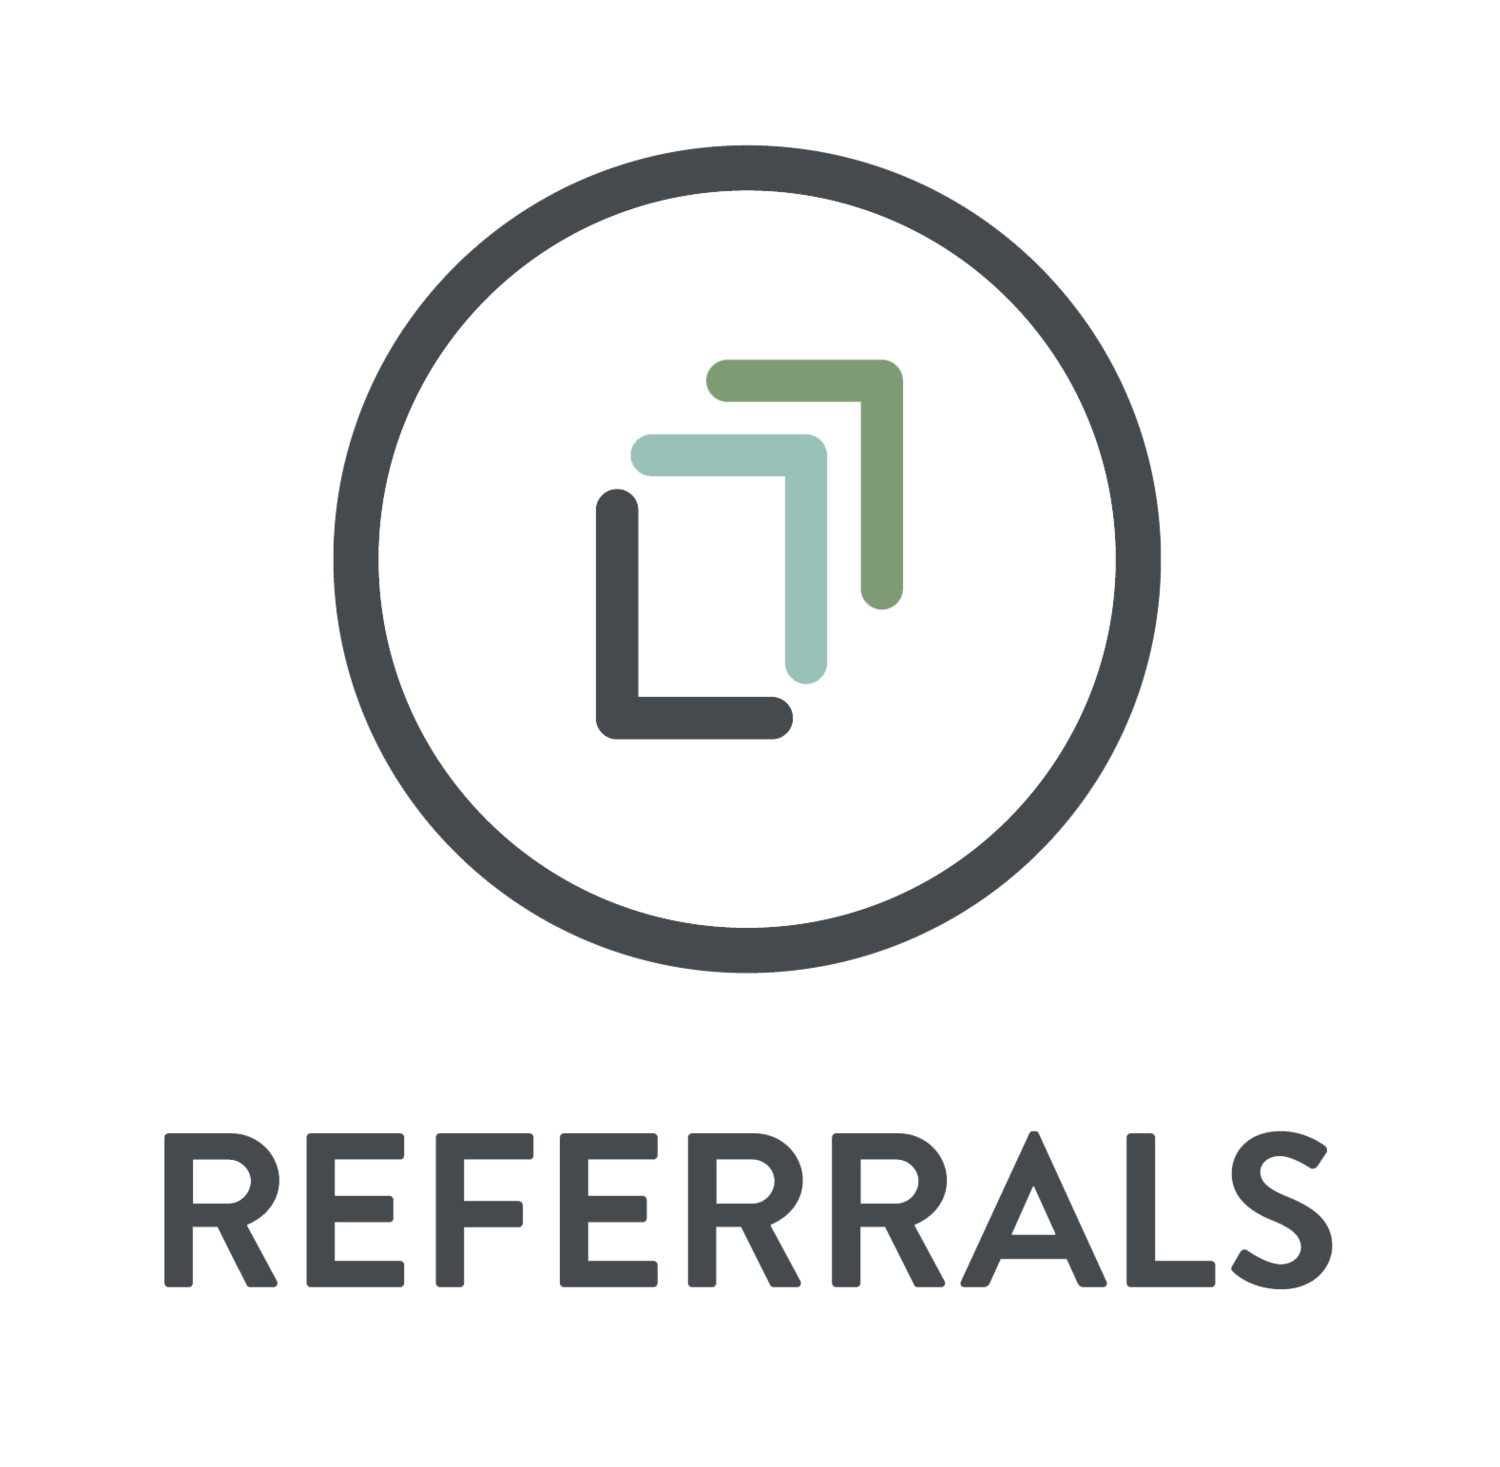 CounselingReferrals.org